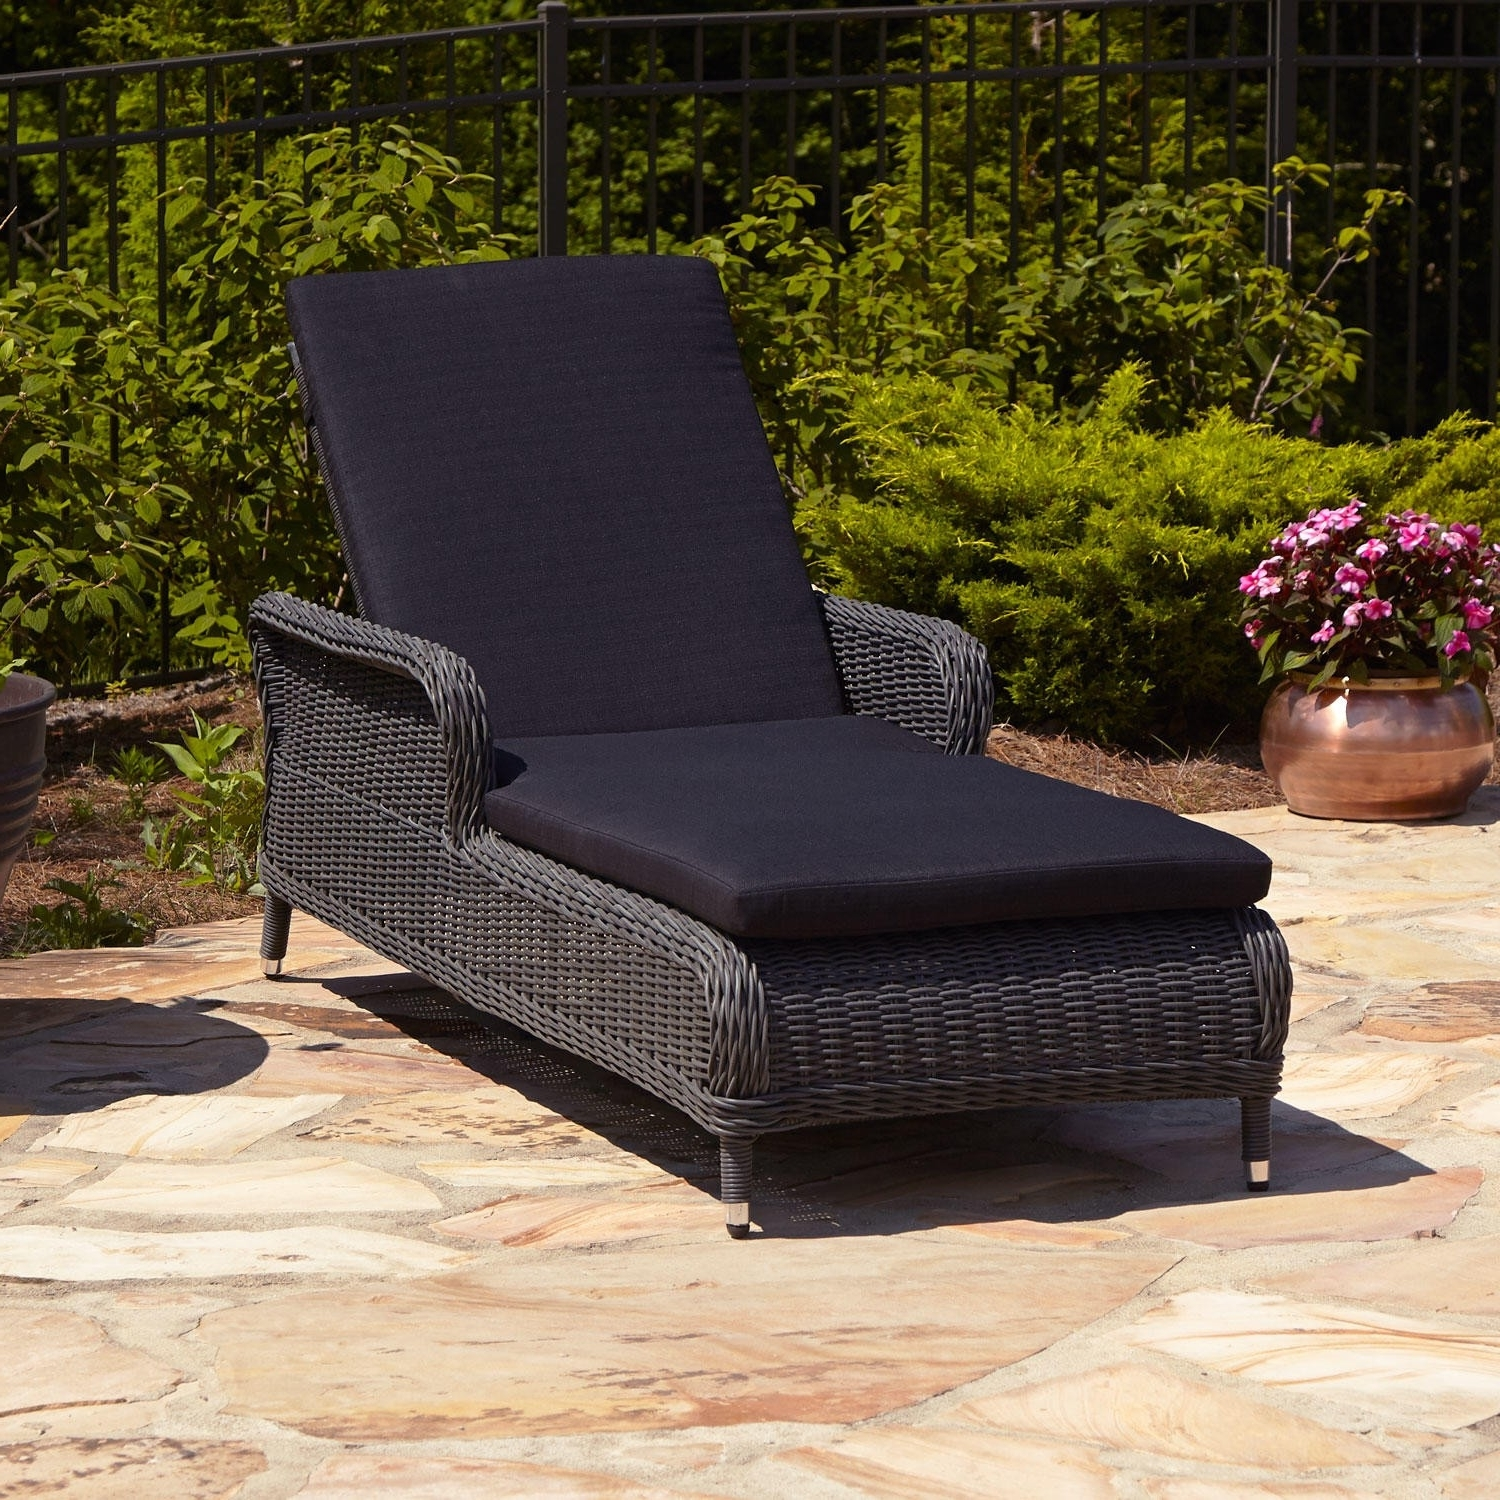 Convertible Chair : Outdoor Cushions High Back Patio Chair Regarding Widely Used Chaise Lounge Chair Outdoor Cushions (View 4 of 15)